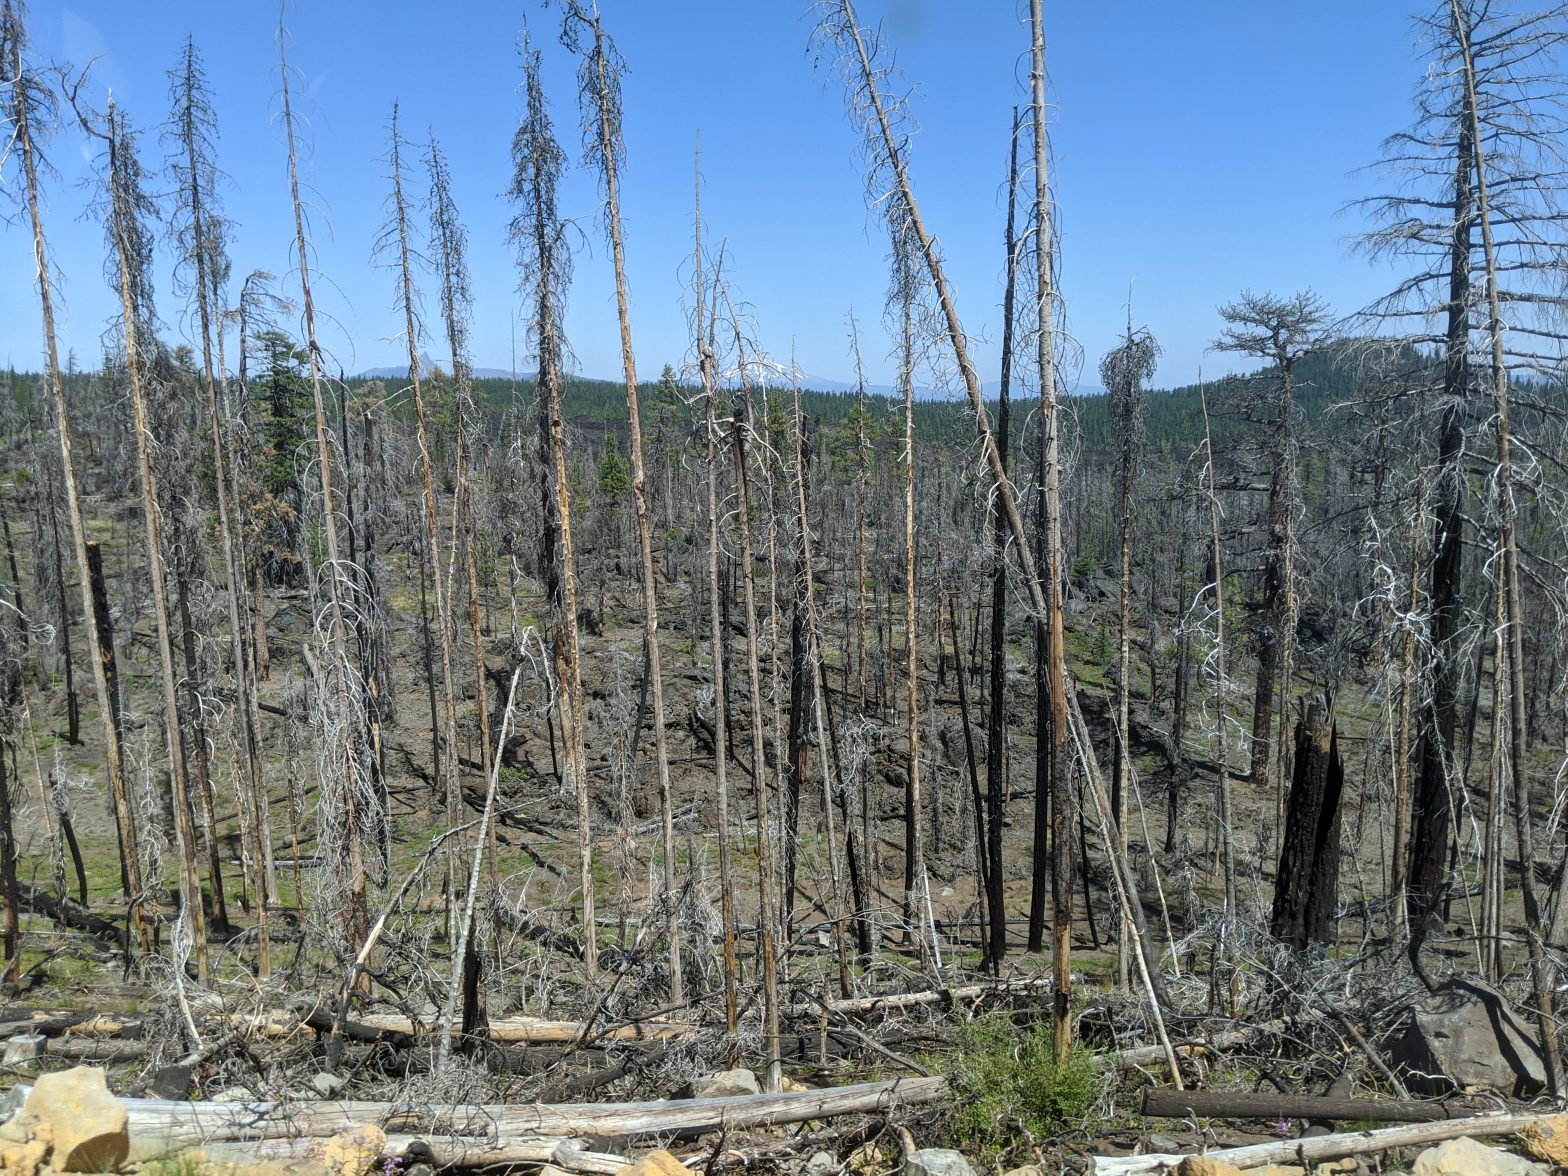 Lave beds in Oregon with burnt trees